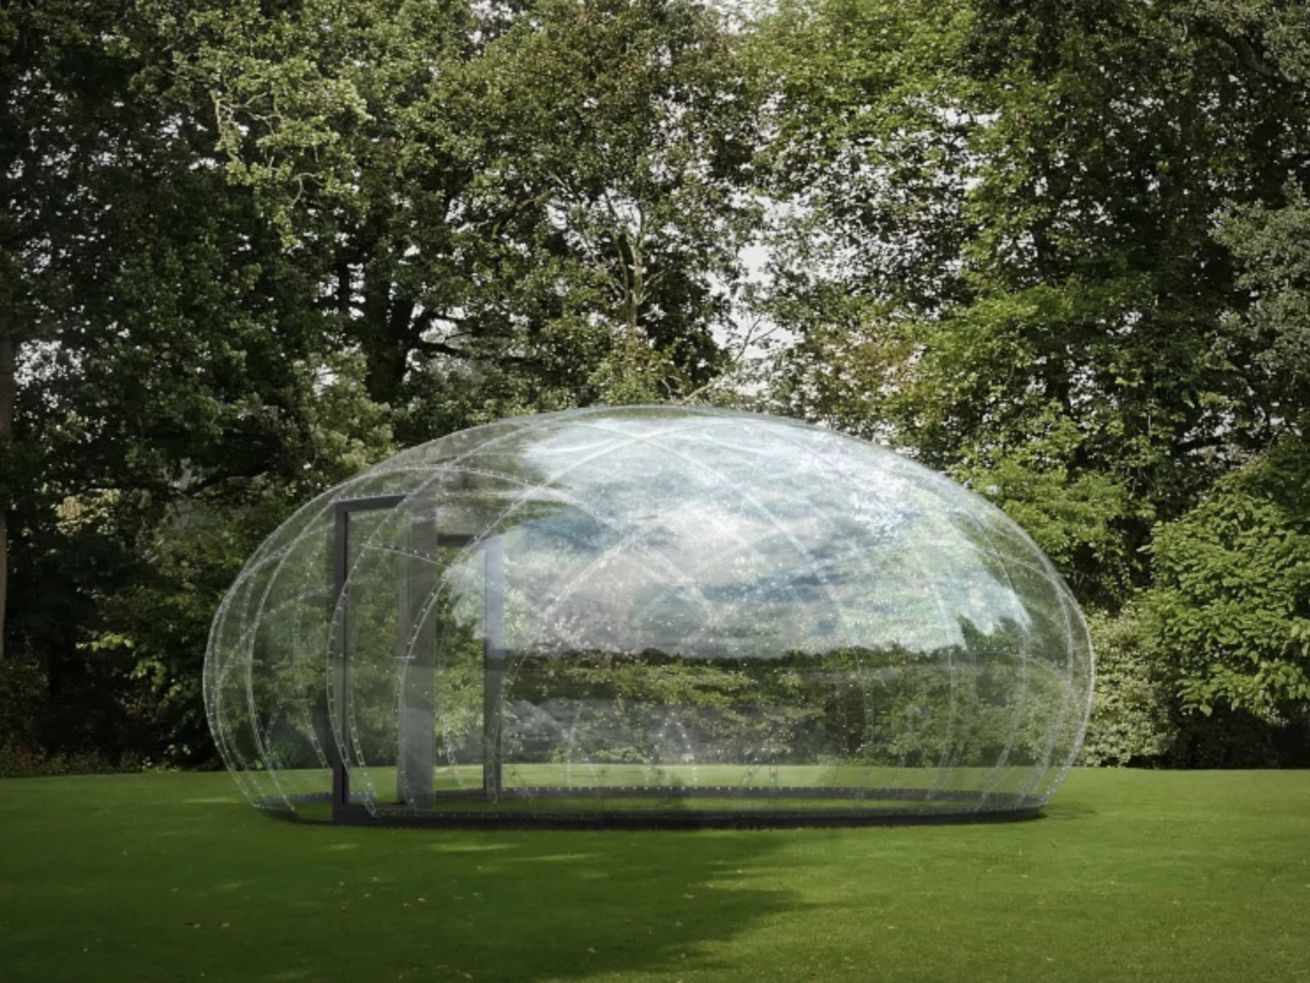 Transparent pavilion looks like a massive water droplet